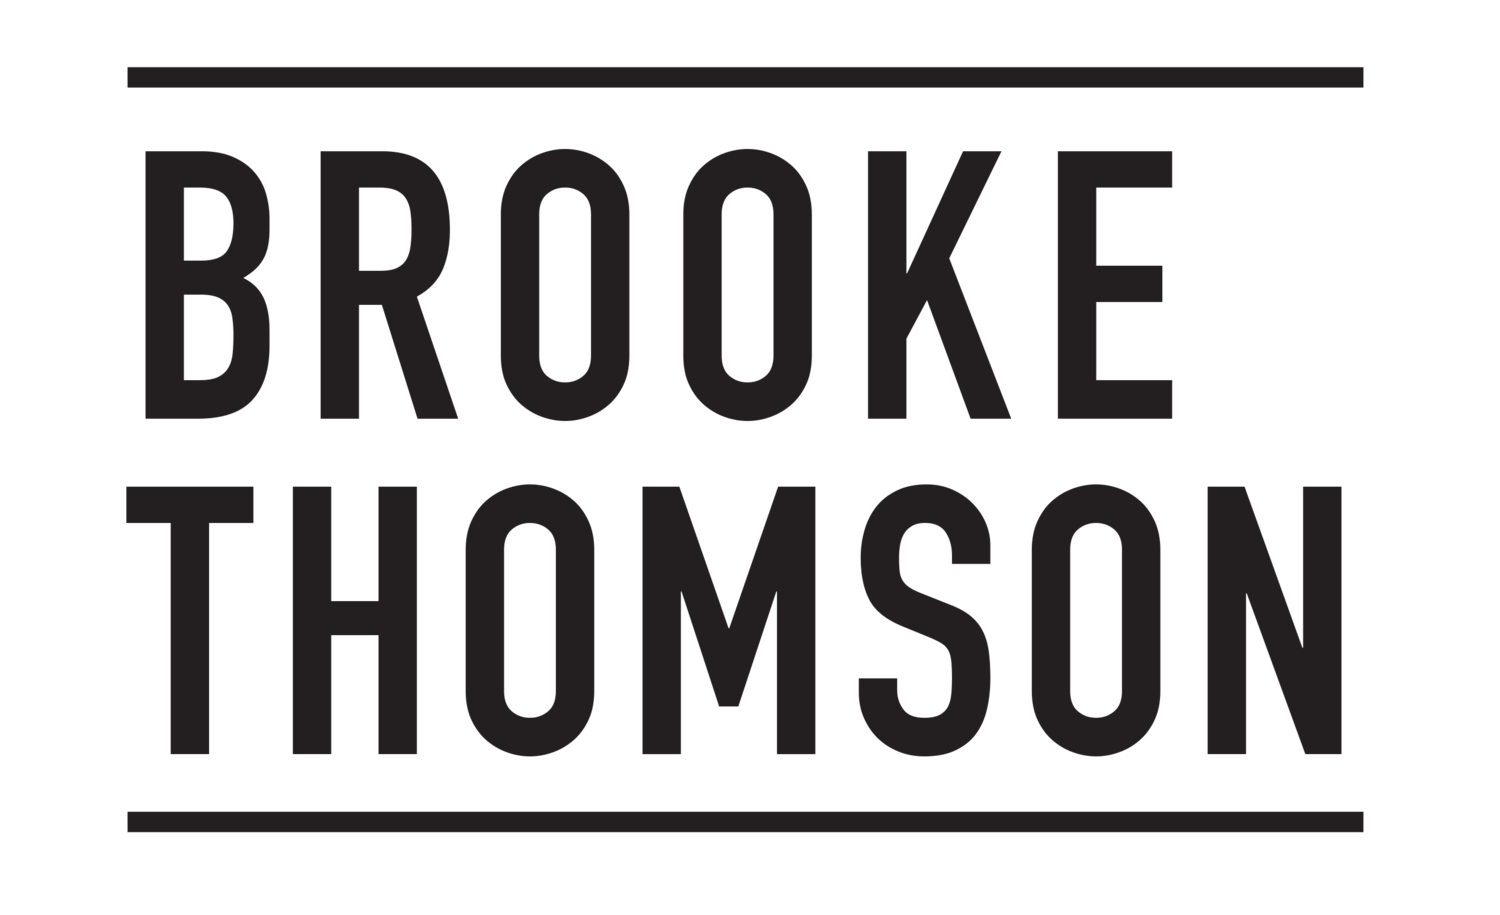 Brooke Thomson